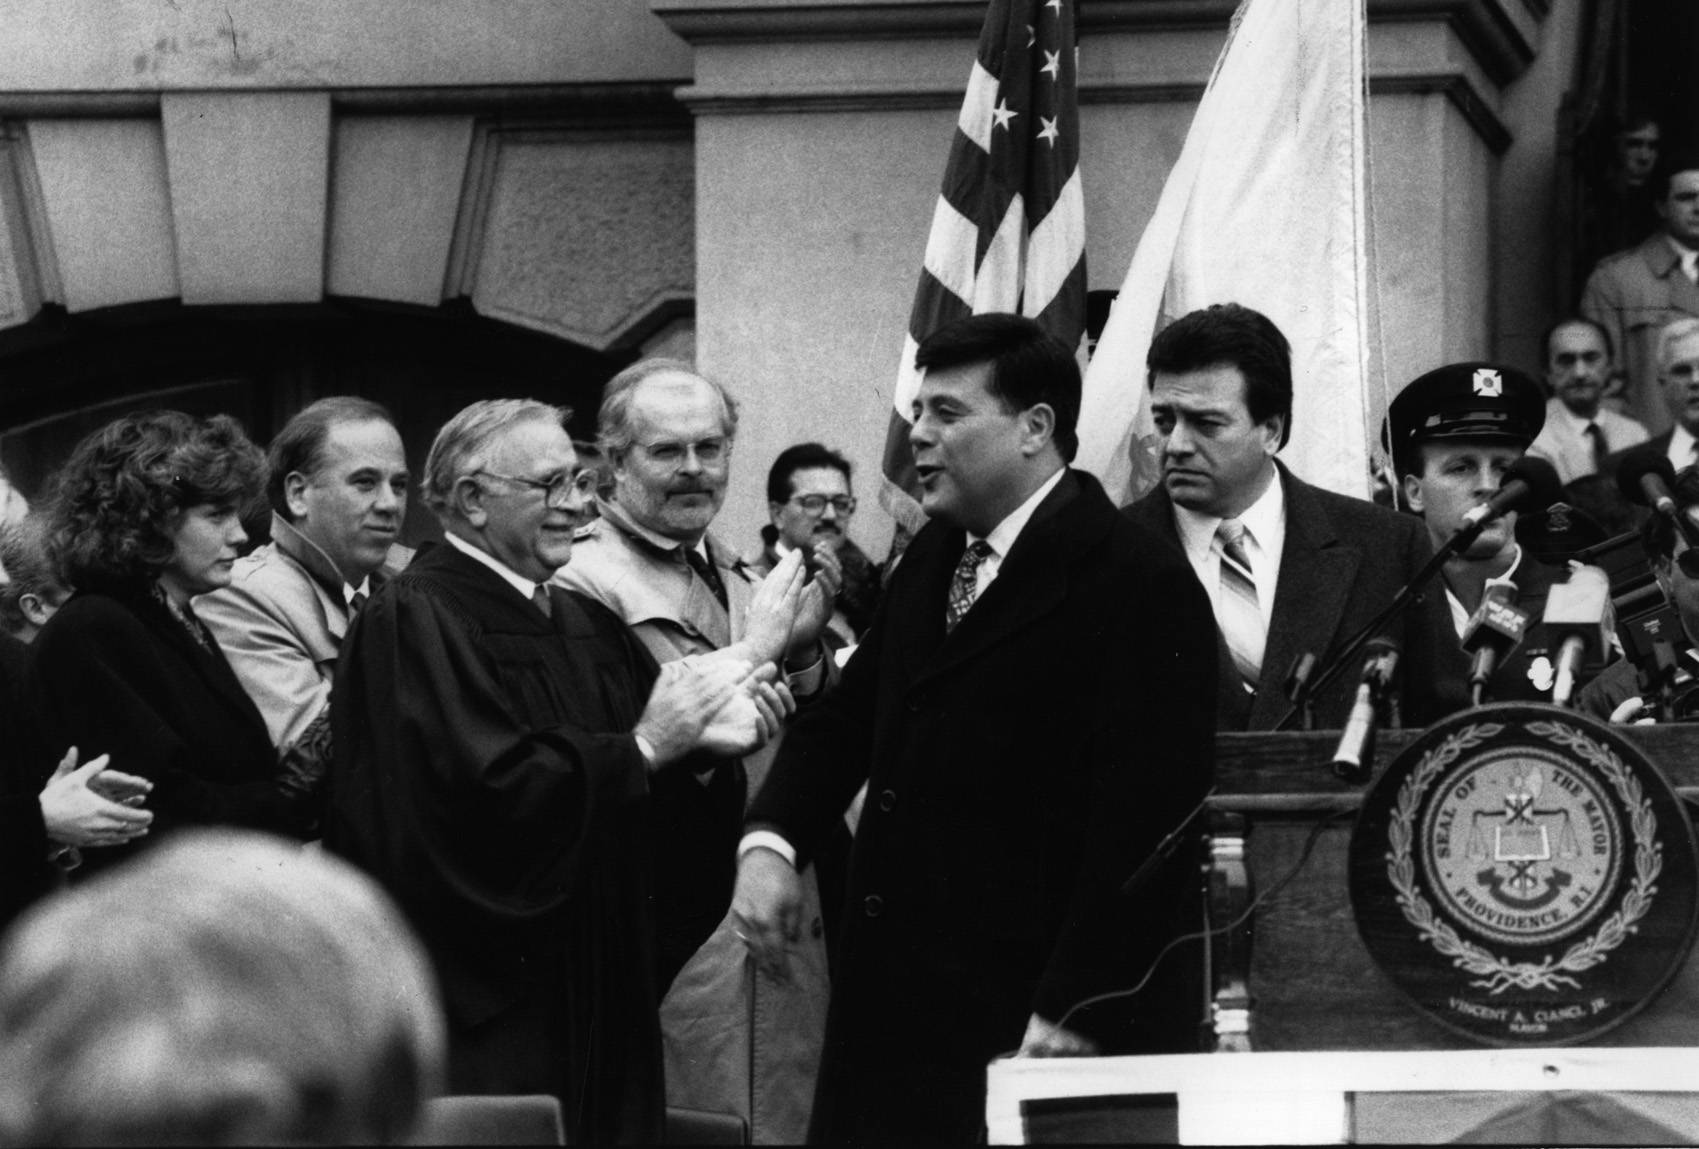 Buddy at his inauguration in 1991. Buddy won the election by just over 300 votes, his smallest margin ever. Courtesy of The Providence Journal/ James J. Molloy.